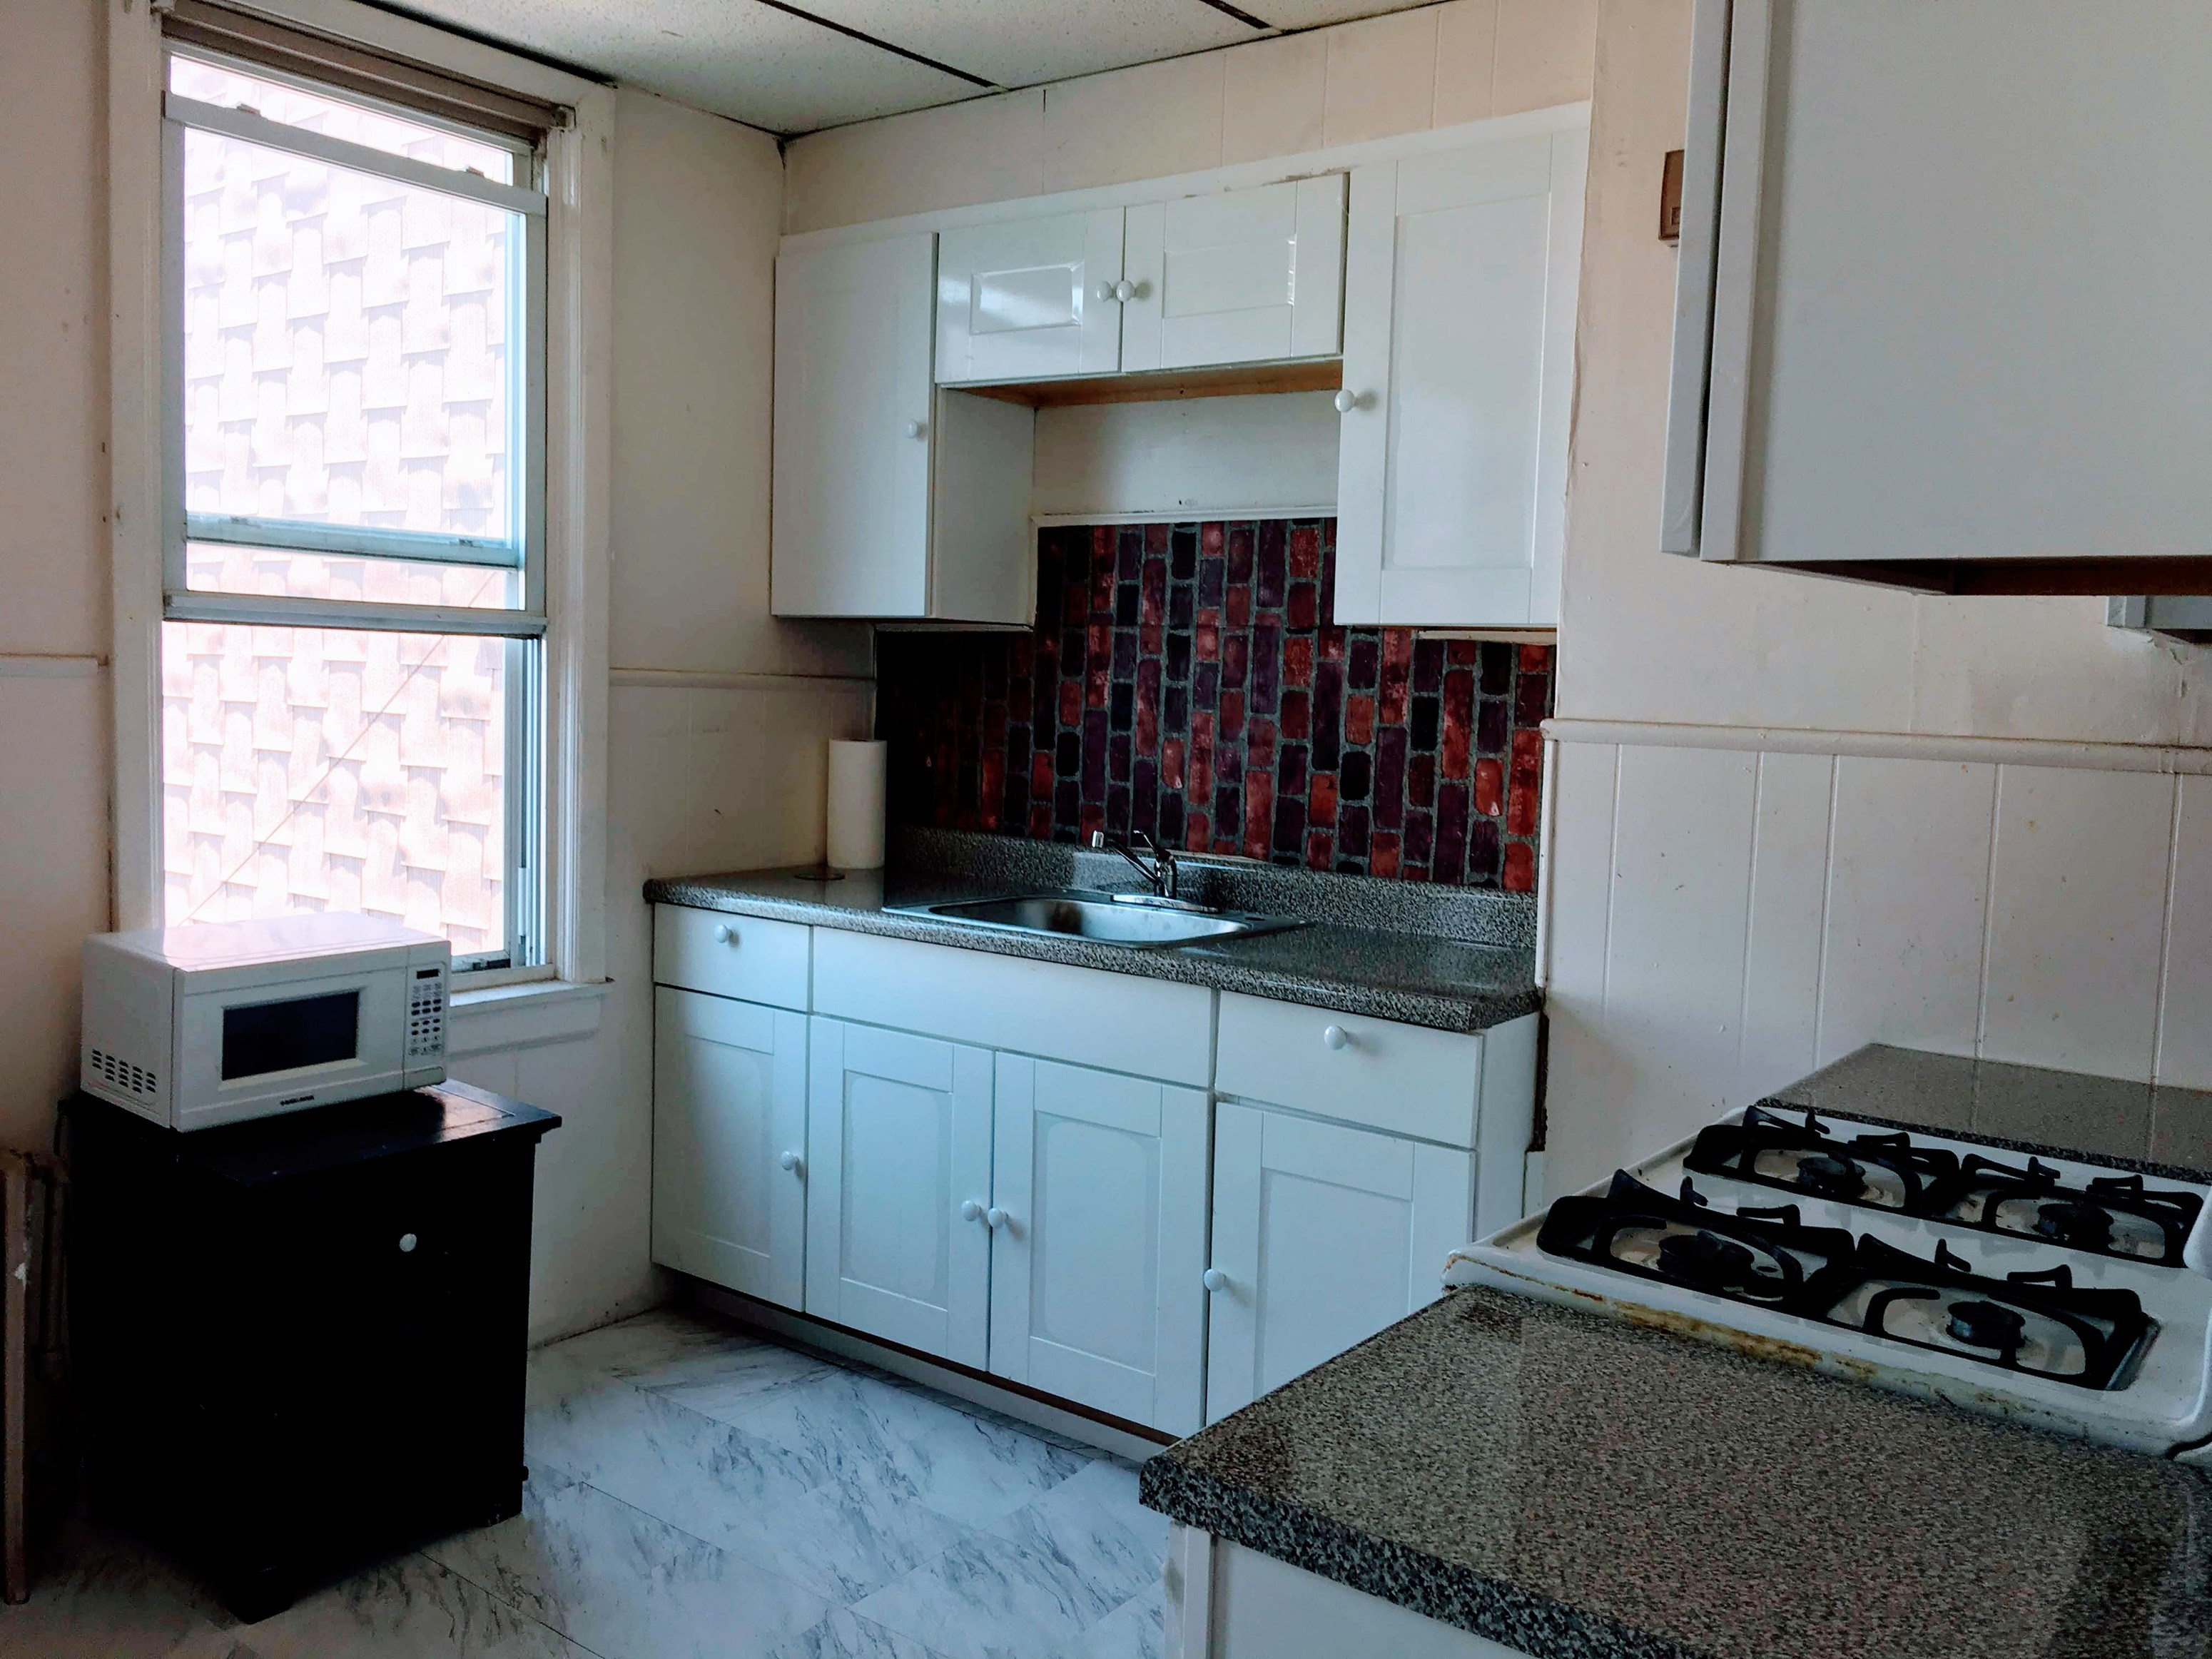 113 Apartments for Rent in Jersey City, NJ, Flats for Rent ...